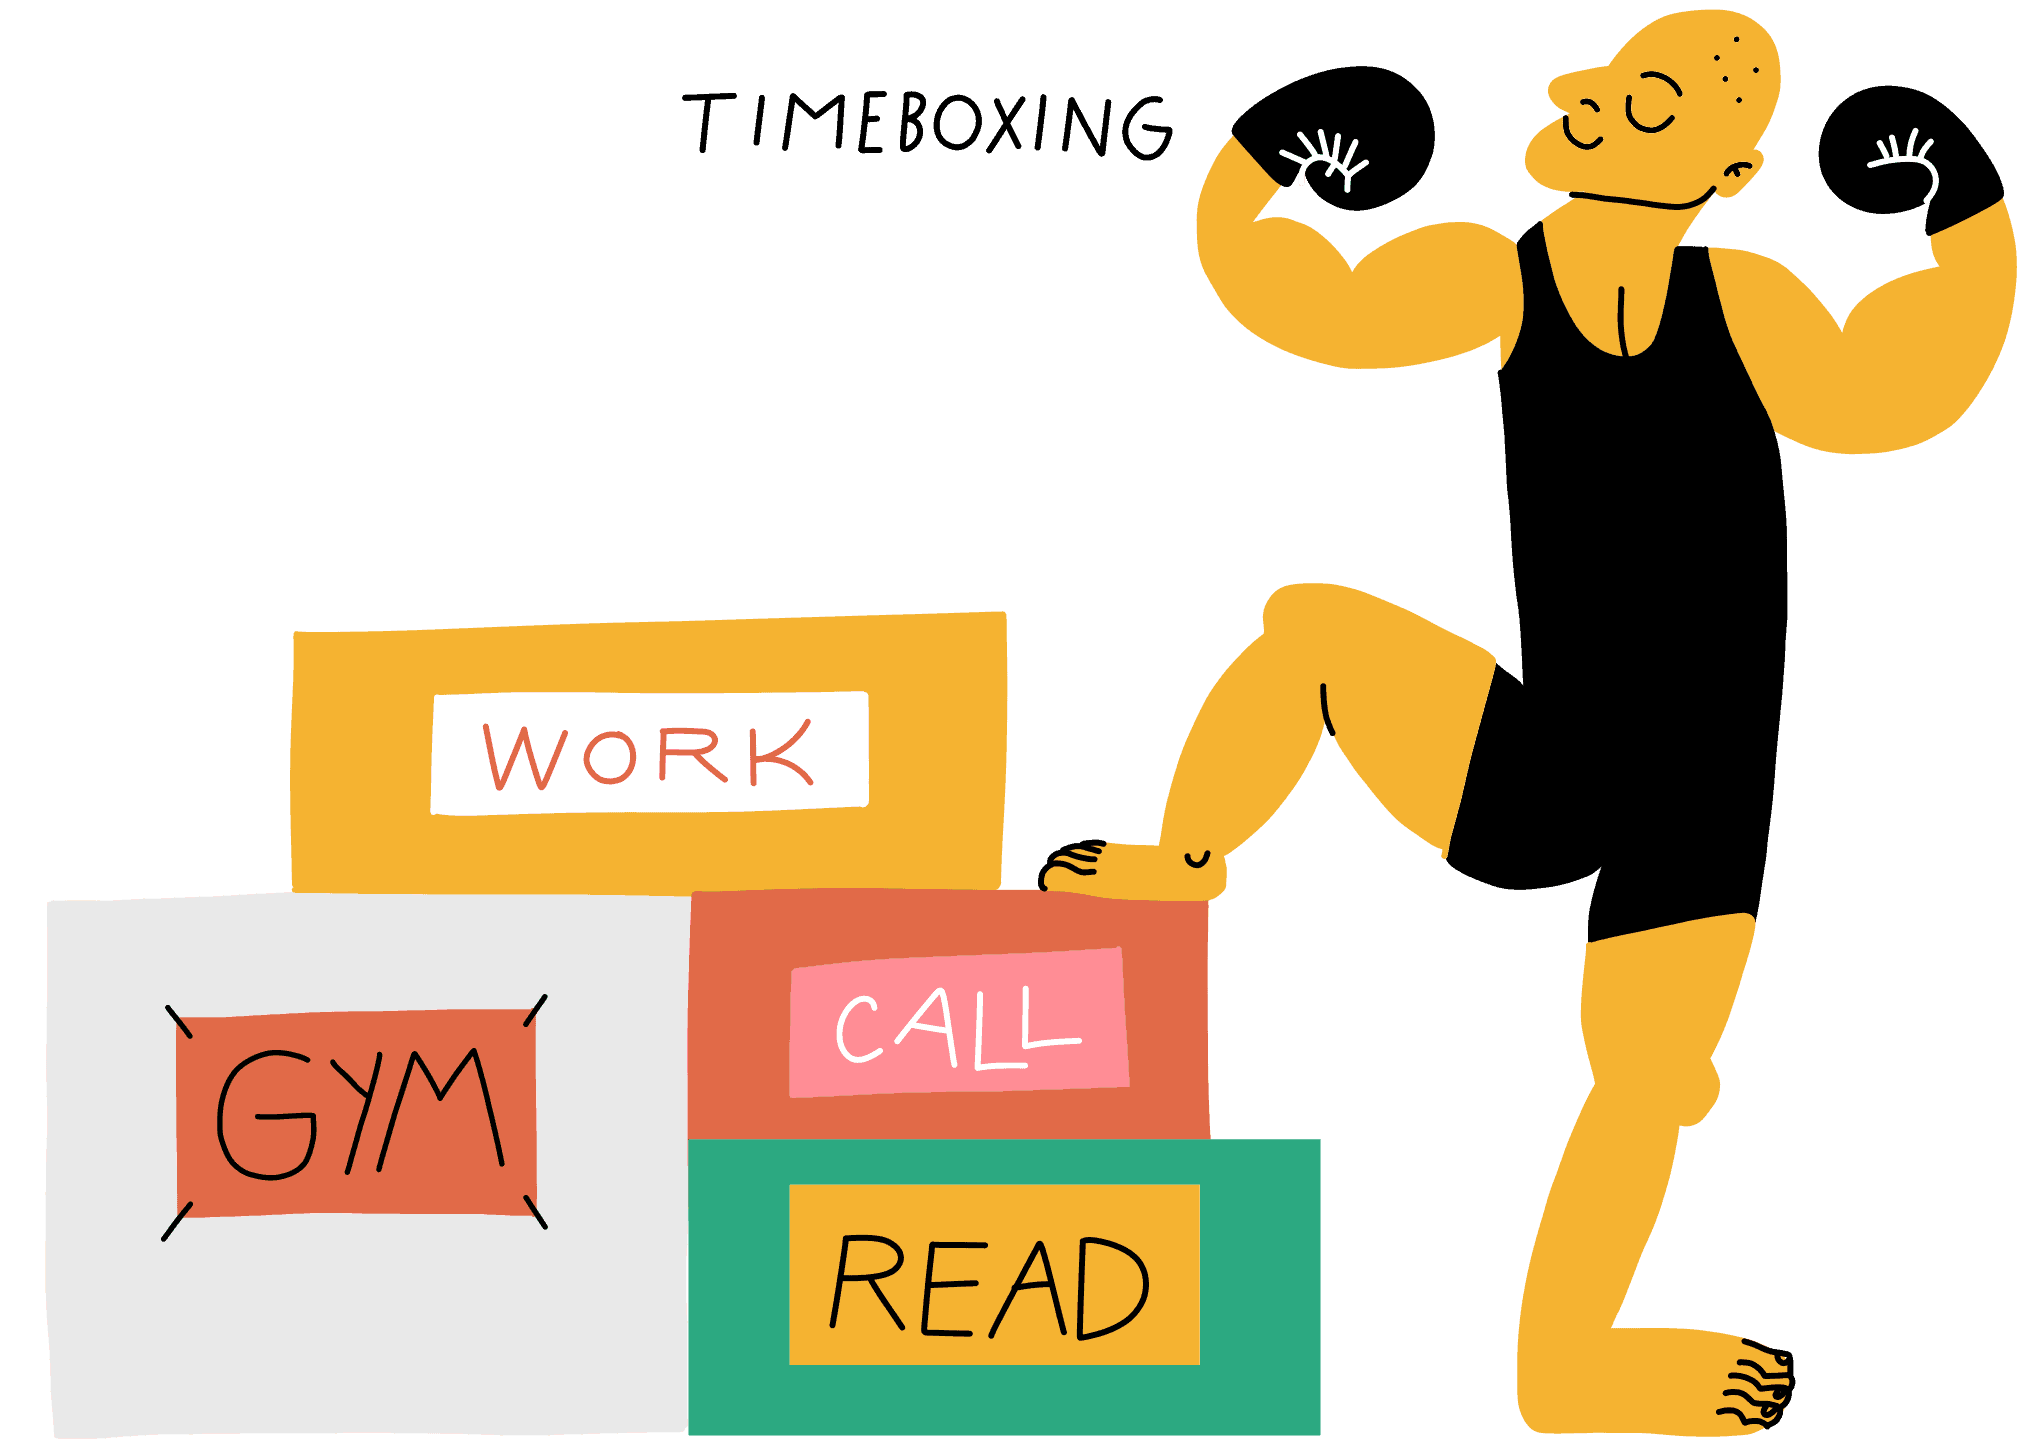 A man standing next to boxes containing his time allocations: work, gym, reading, etc.